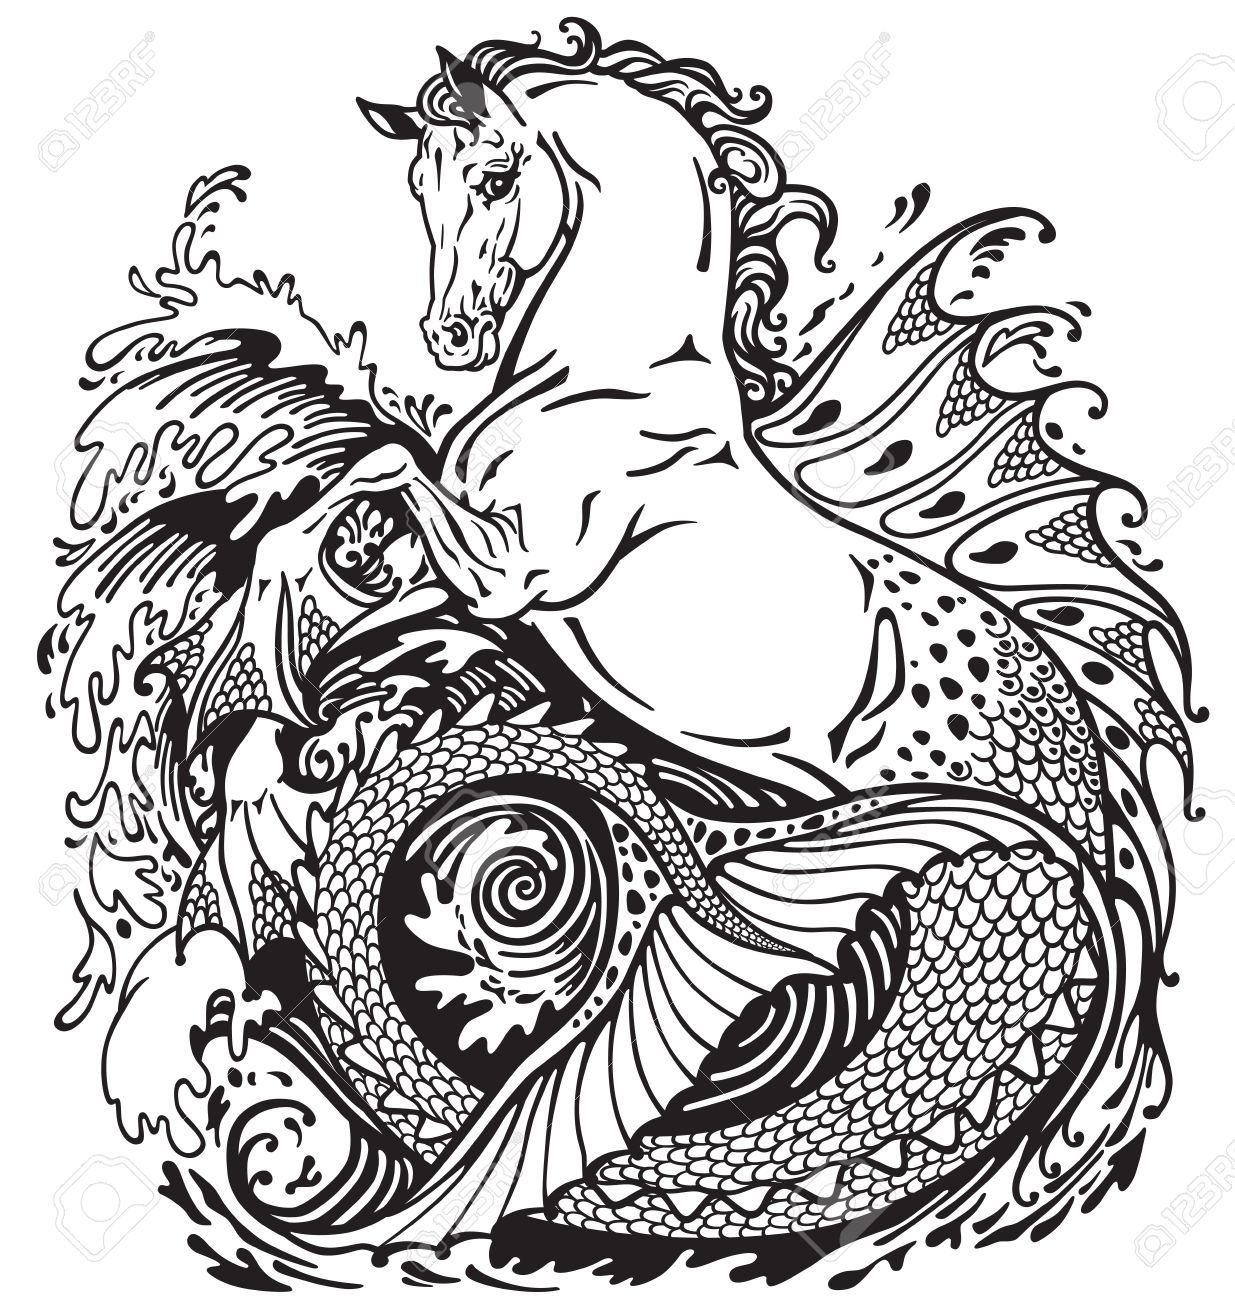 Image result for sea horse mythical creature Black and